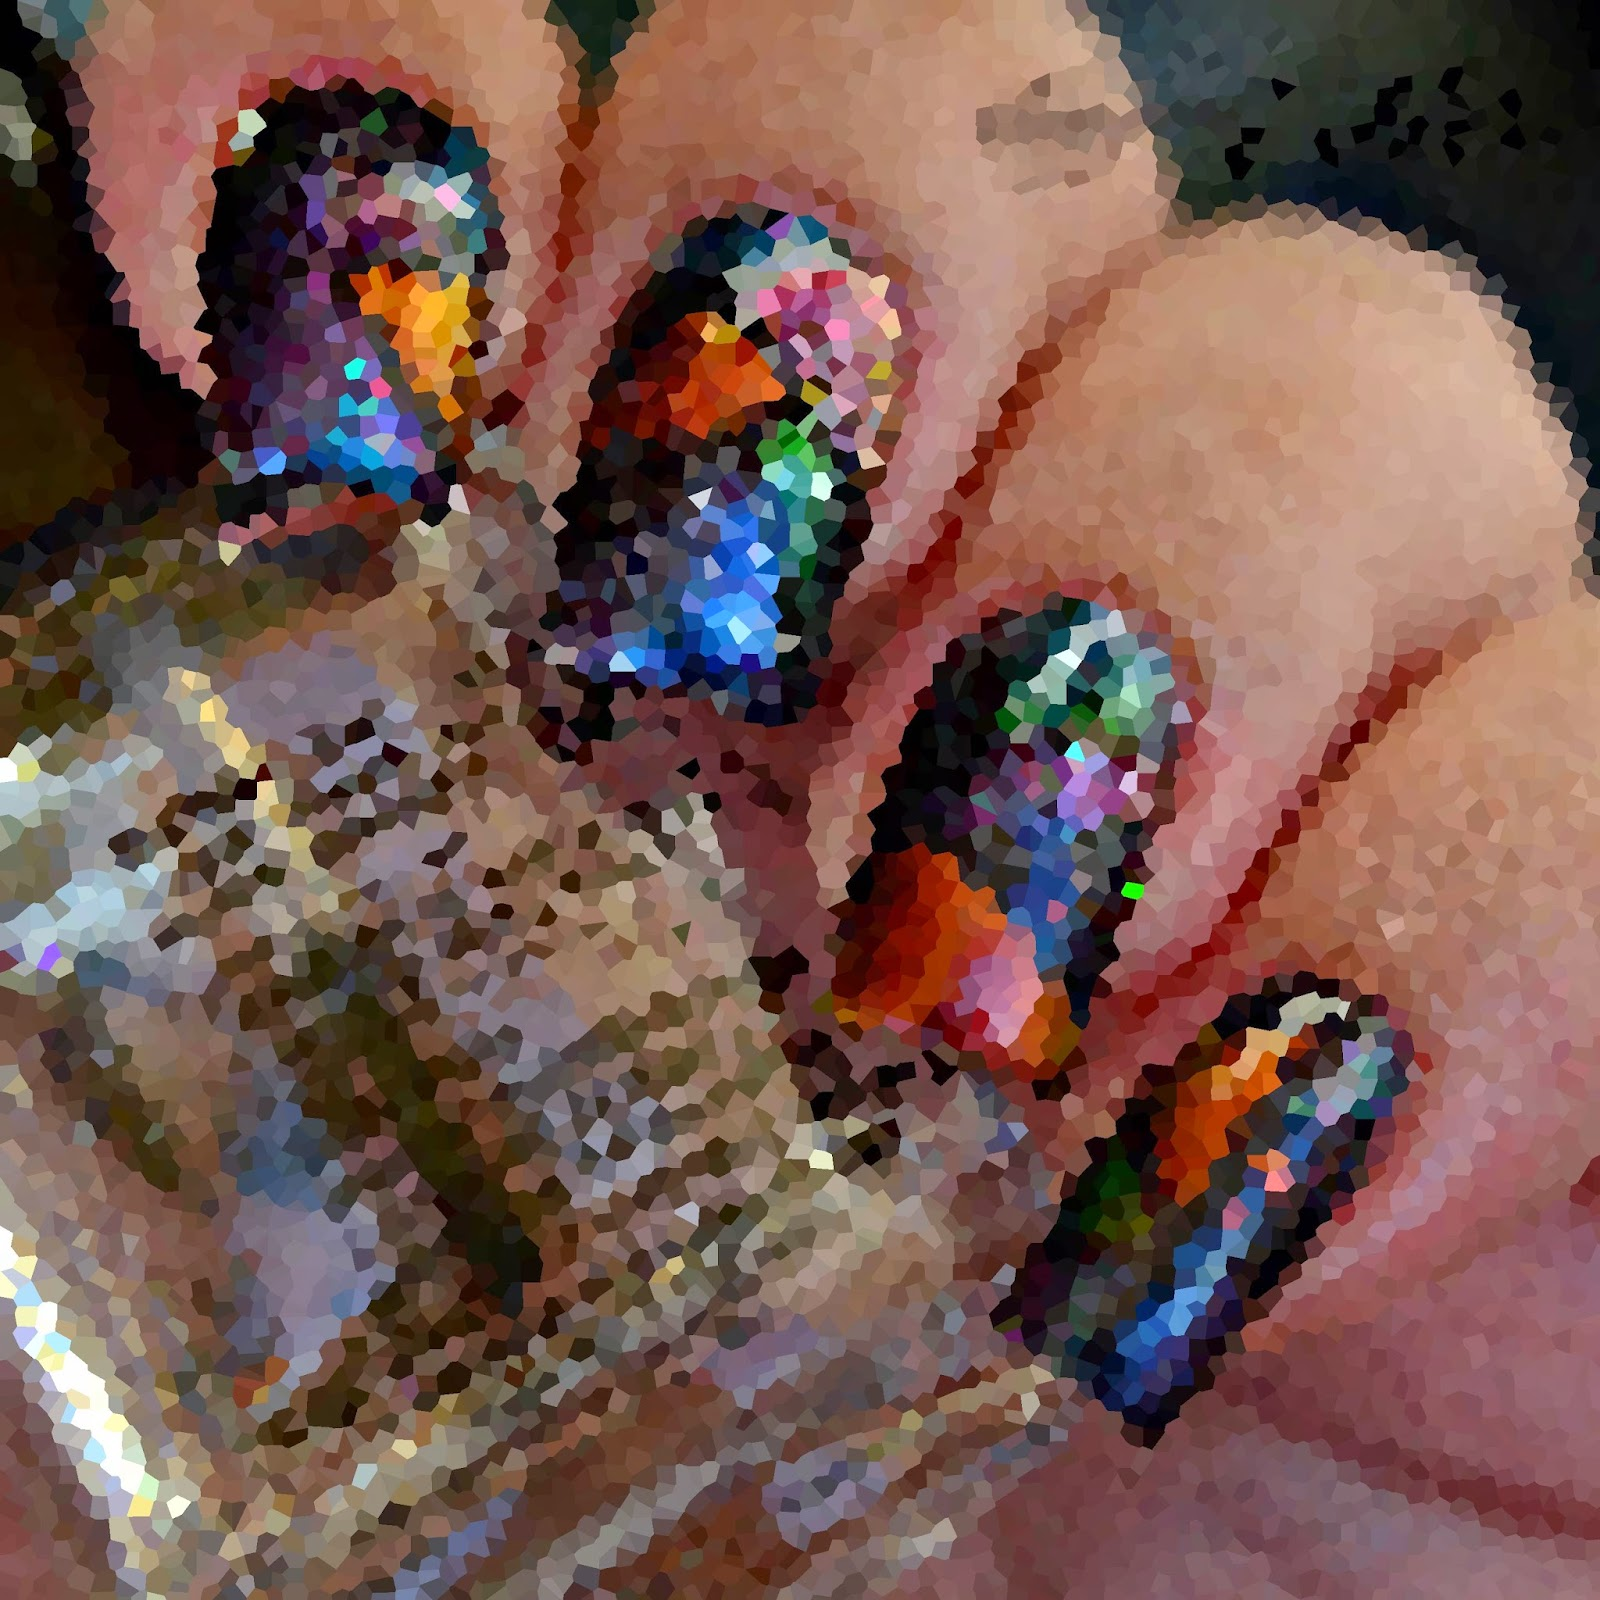 http://rainpow-nails.blogspot.com/2014/08/tape-month-magic-mosaic.html